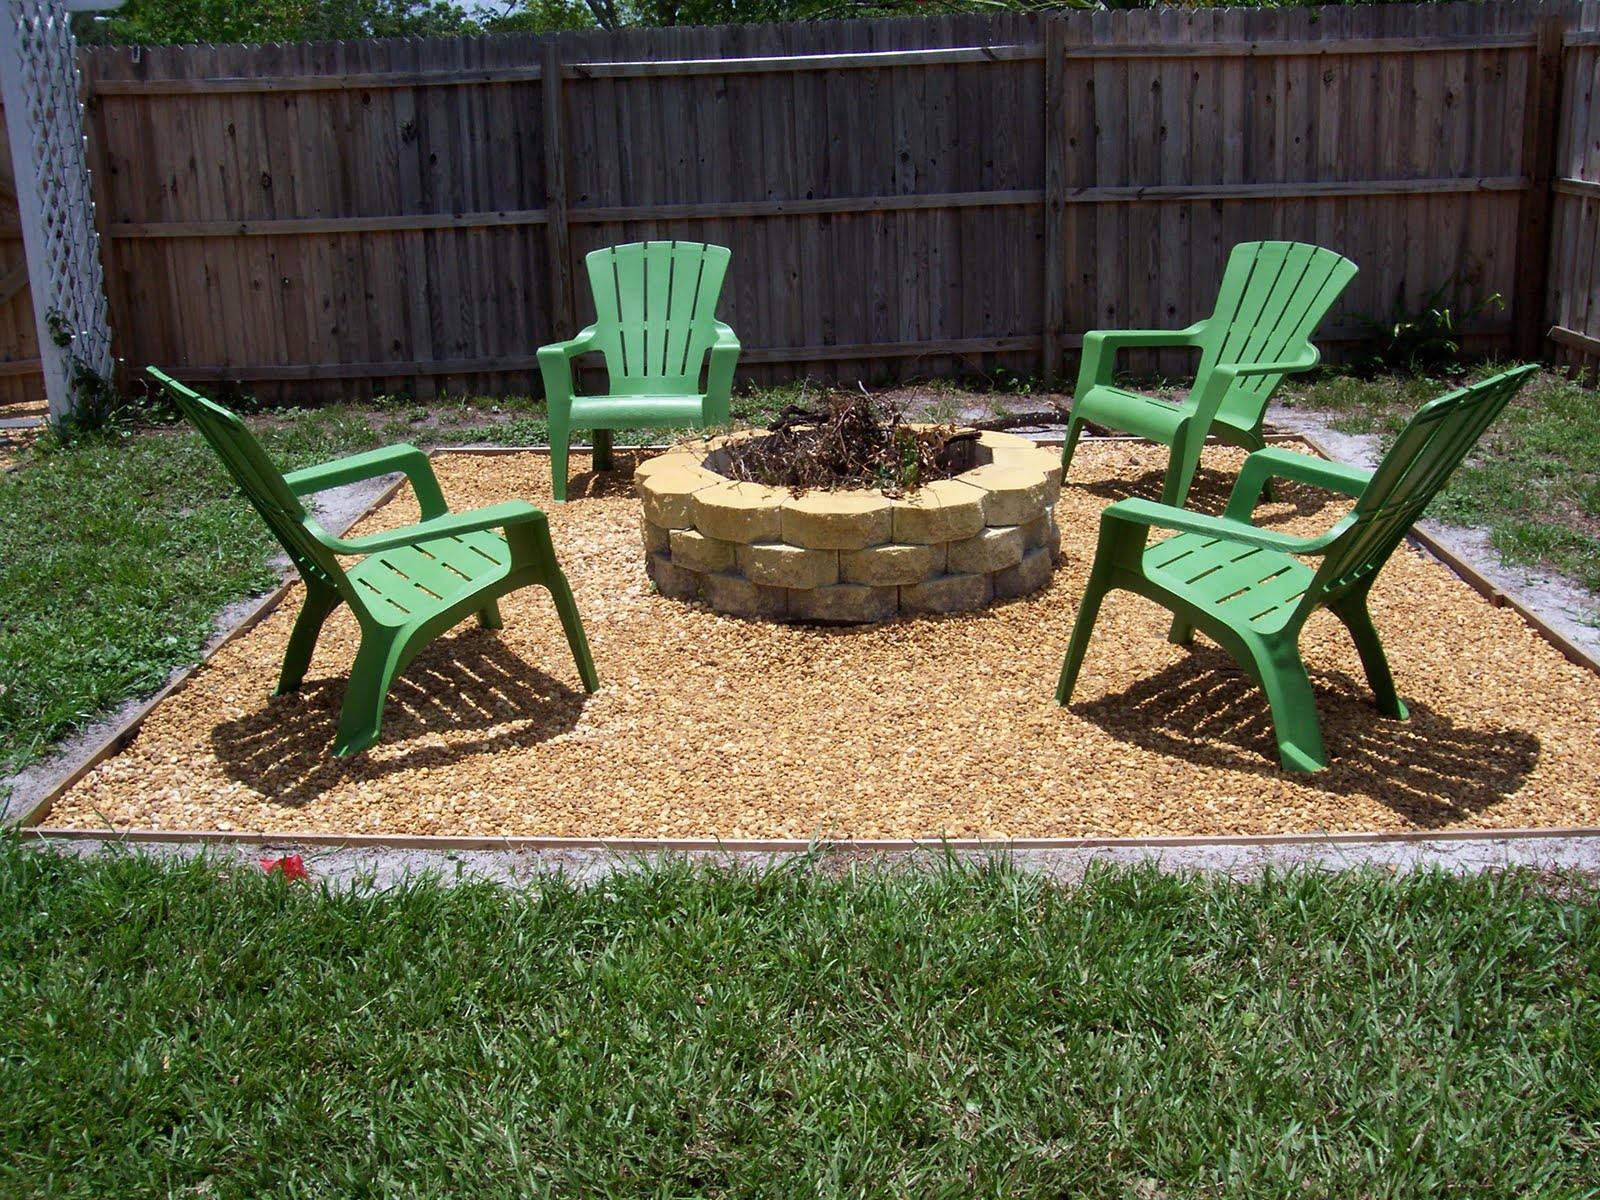 In Ground Fire Pit Design Juggles Cold Outdoor into a Warm Space to ...